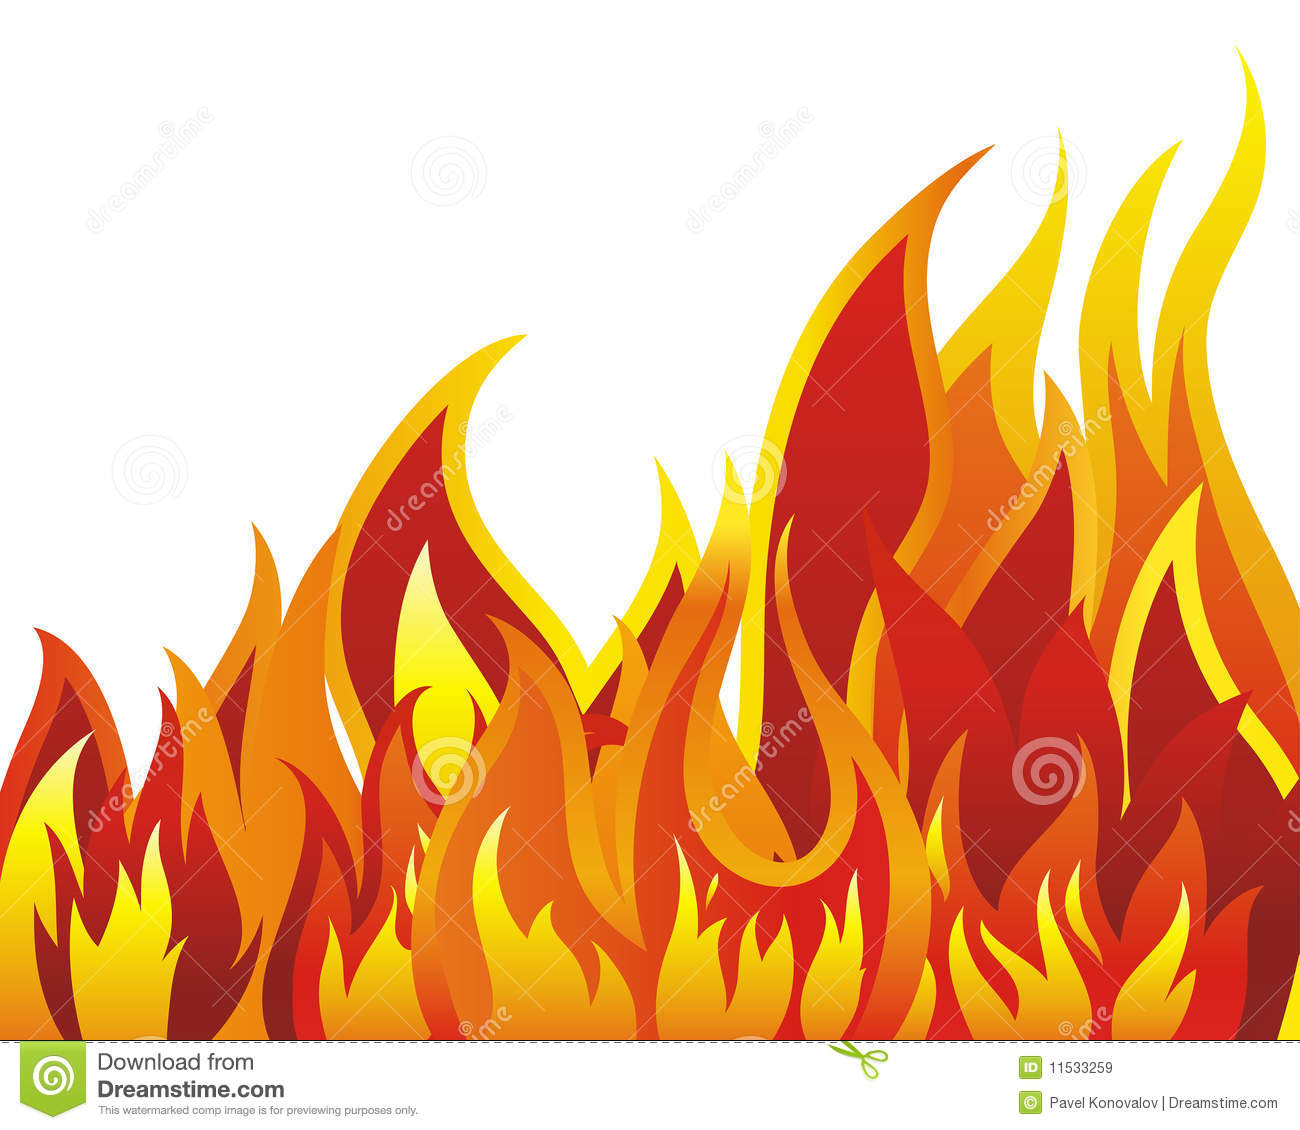 fire clipart free download - photo #40